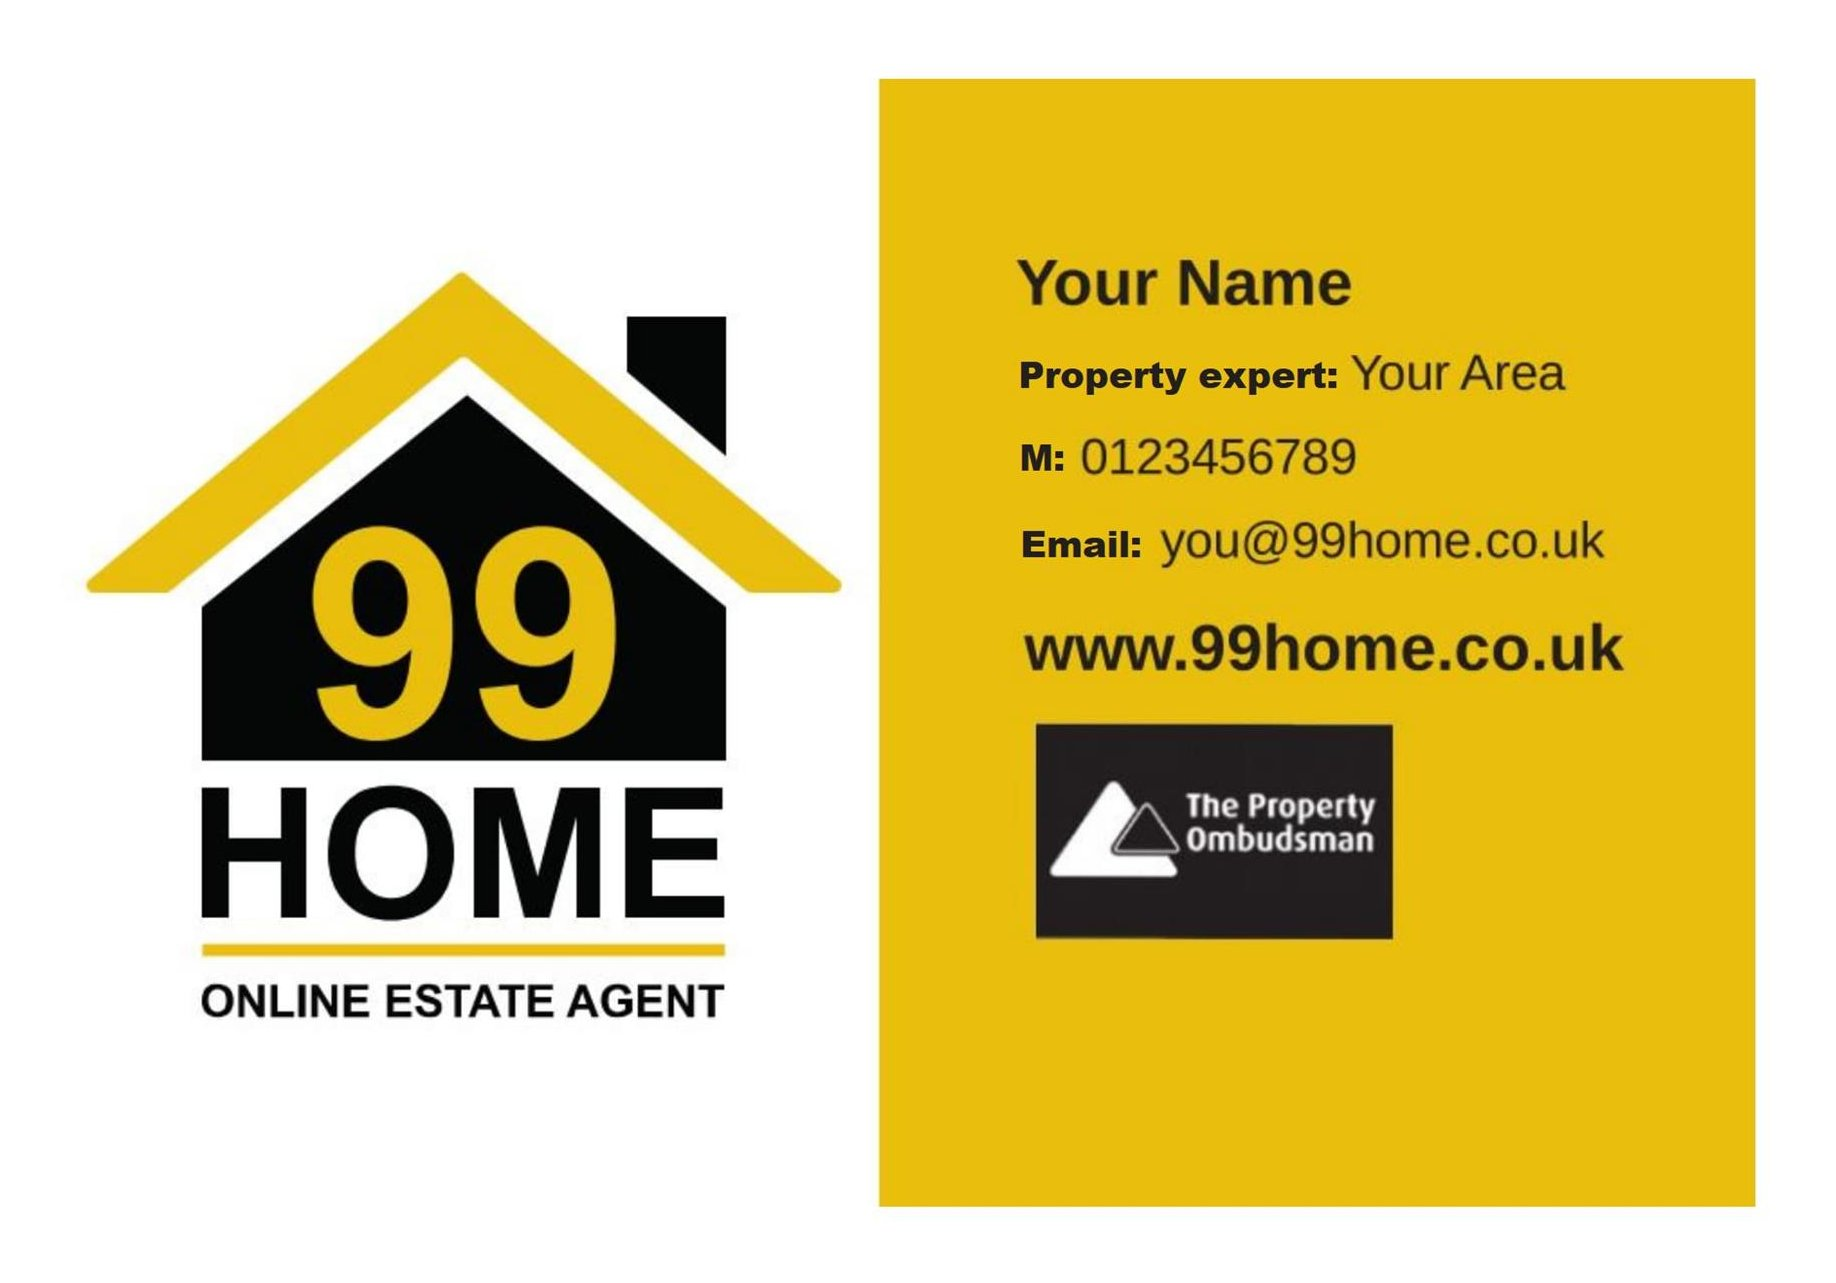 join99home image